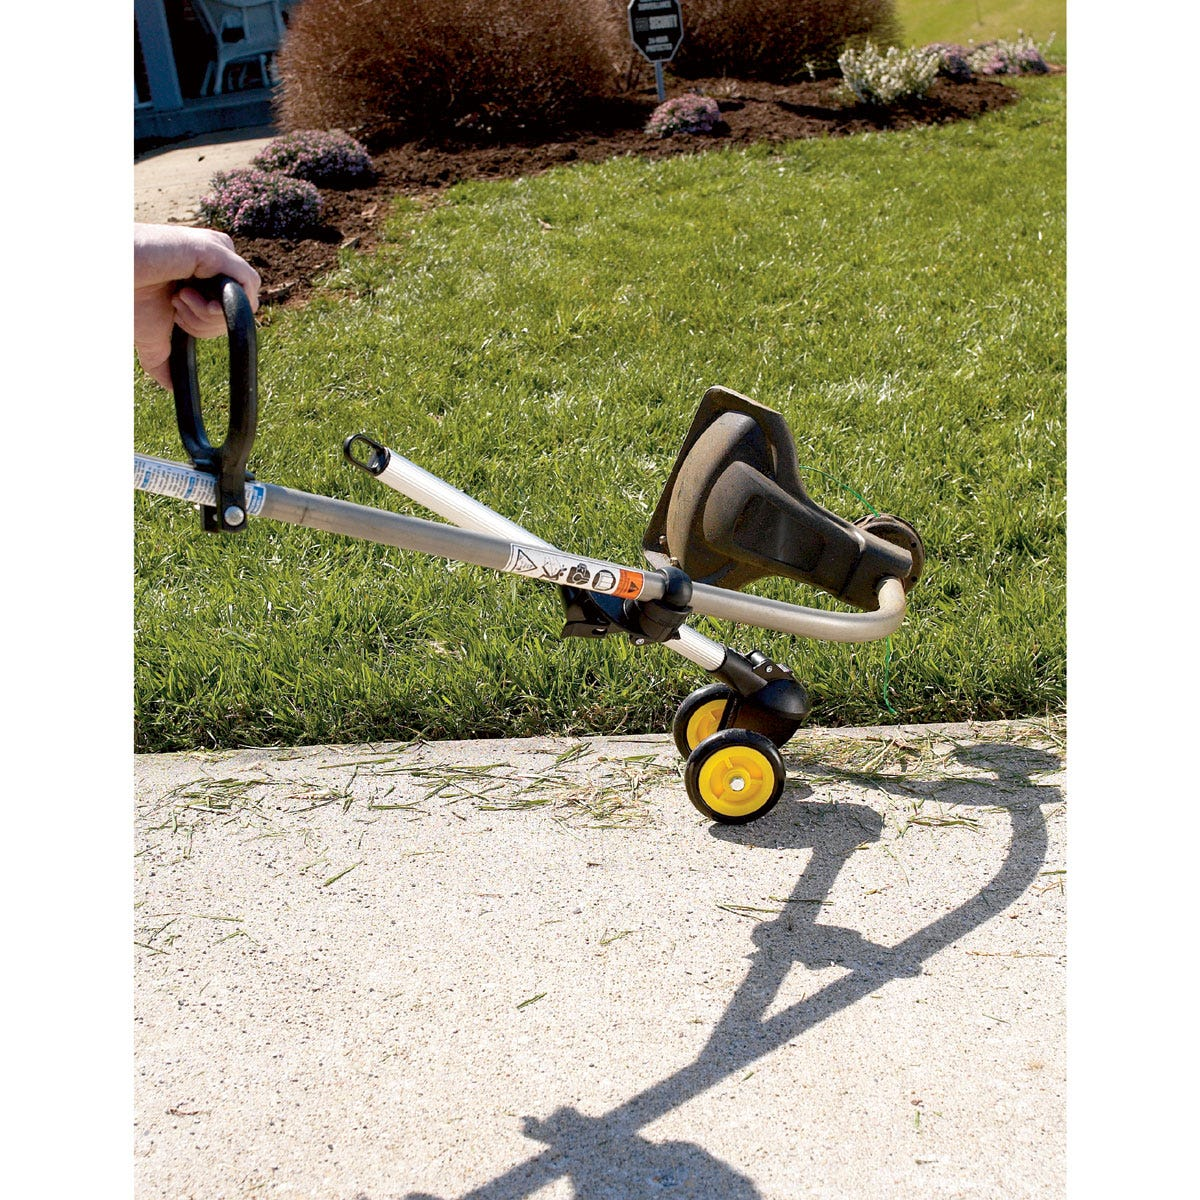 Trimmer Trolley Edging Walkways Lawn Care From